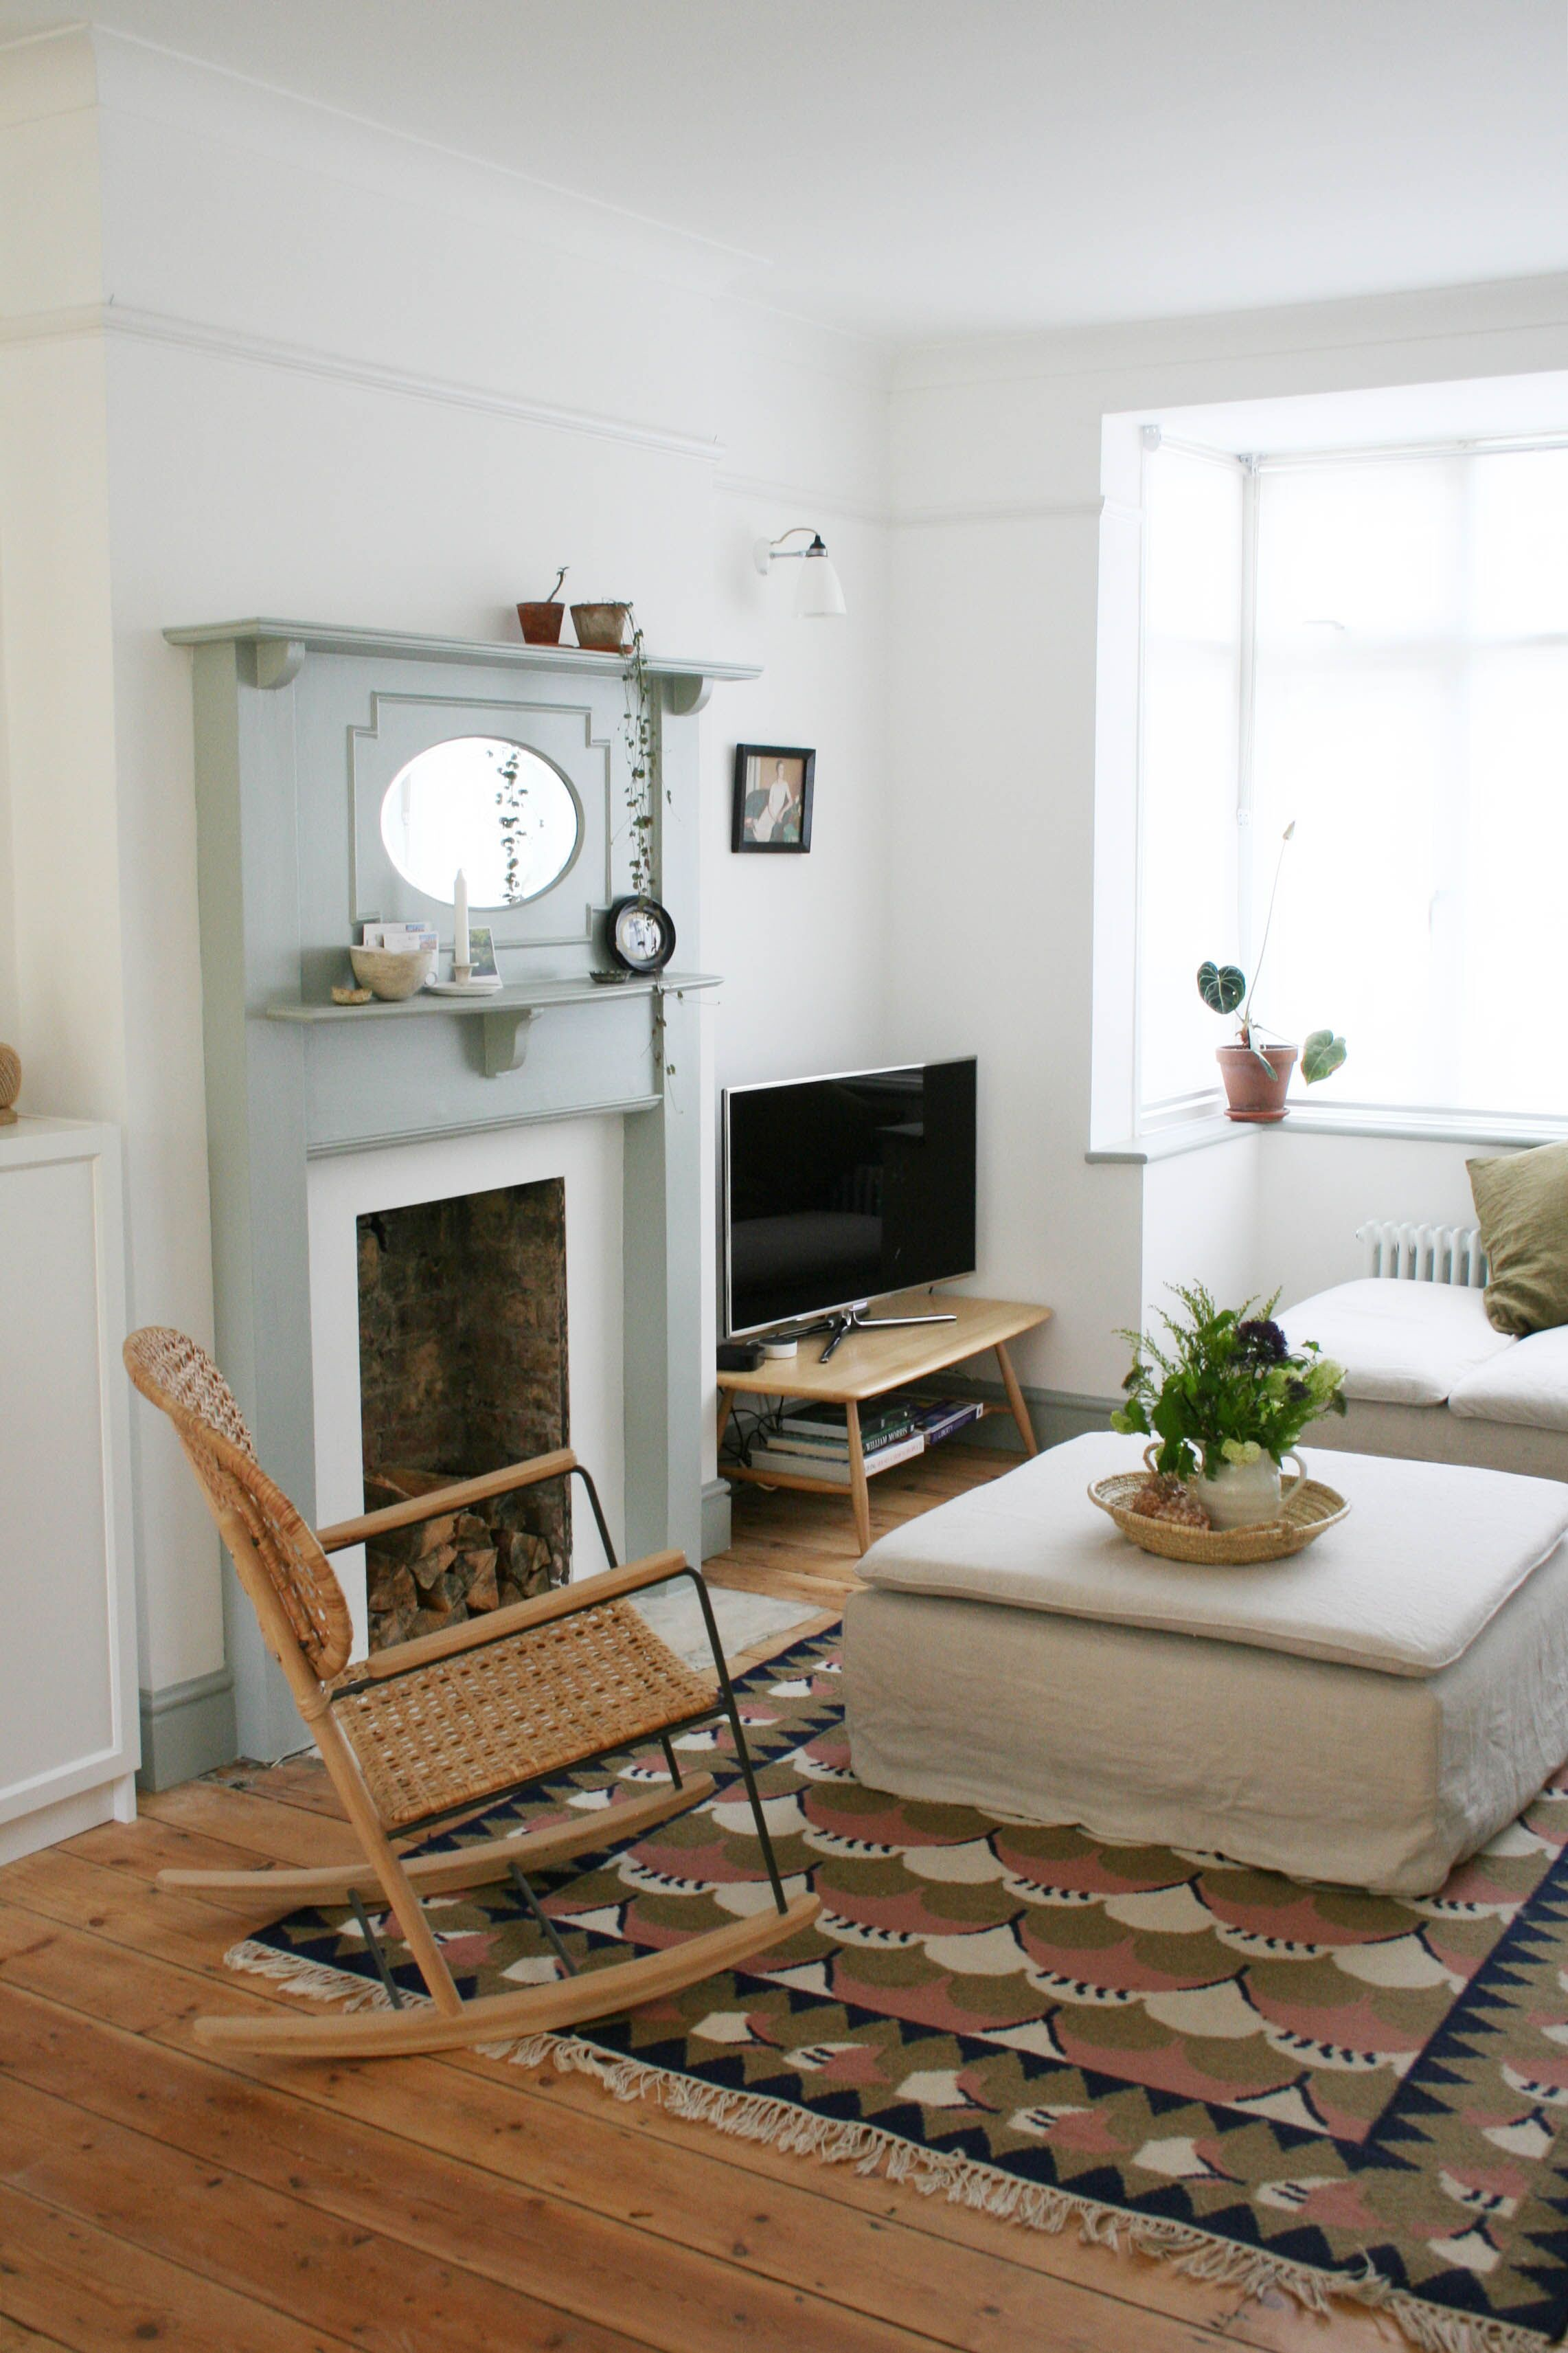 Knocking Down Walls To Create An Open Plan Living Space Apartment Apothecary